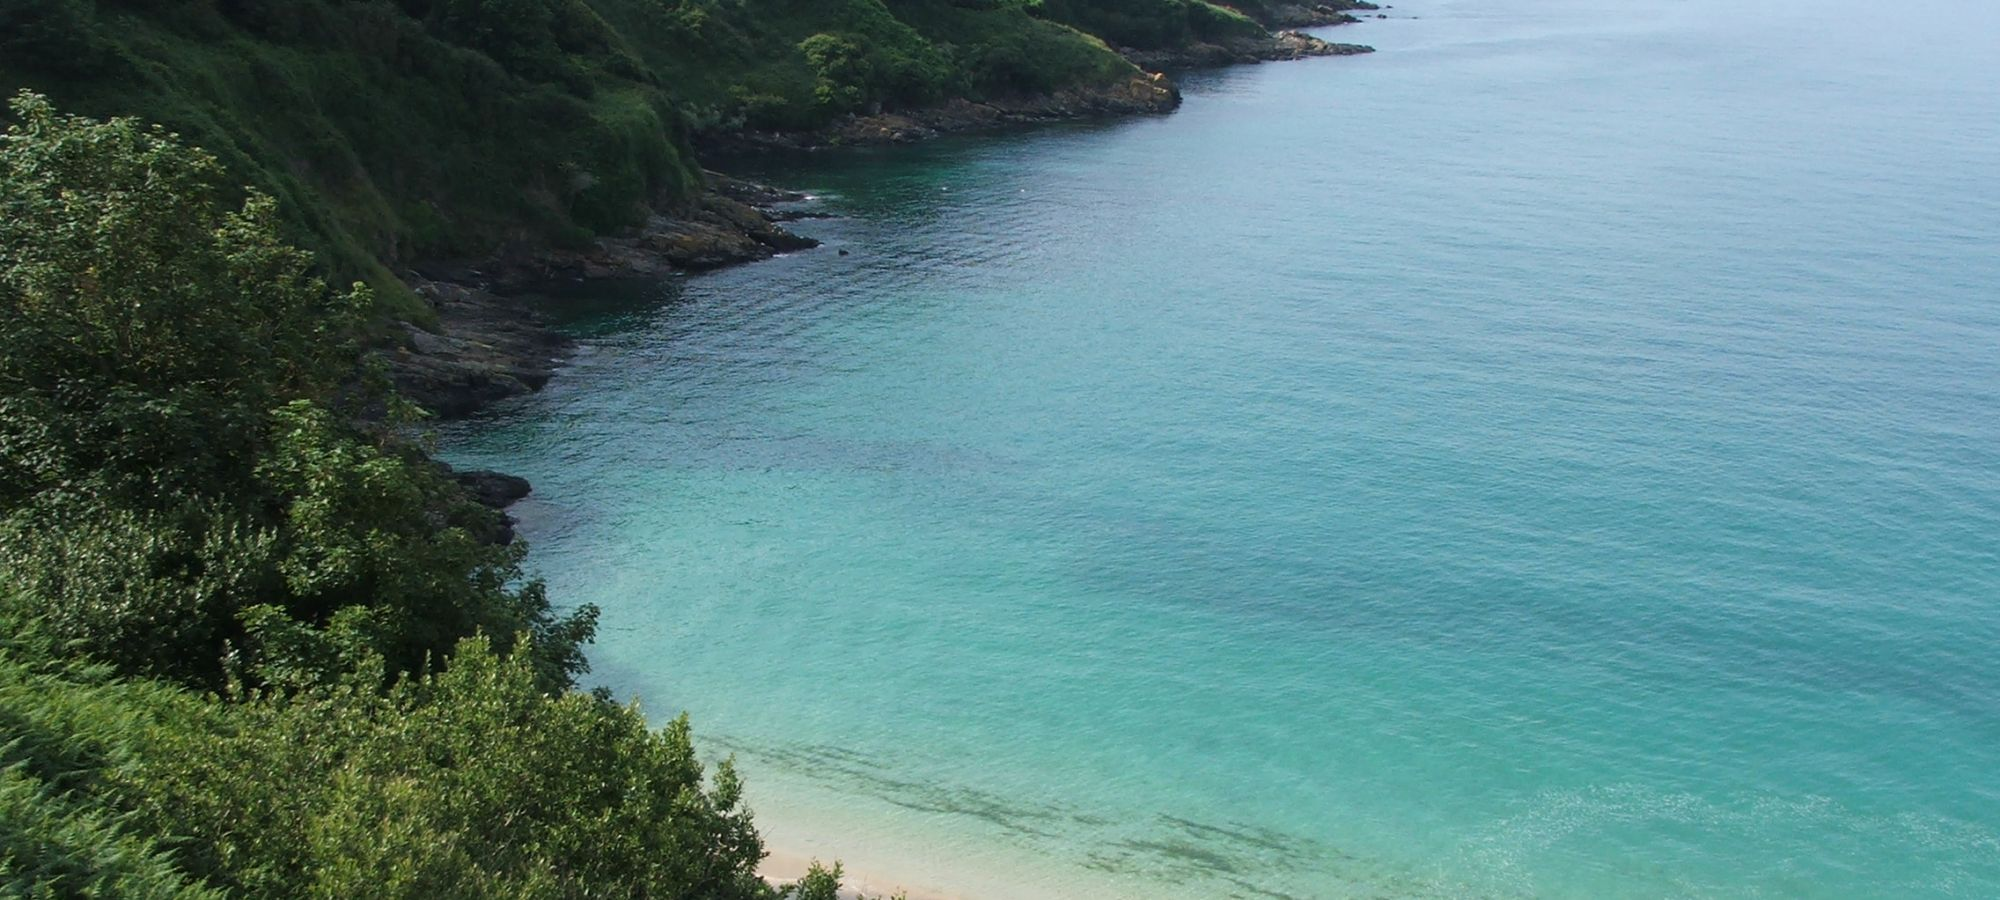 Blue seas at Hawk's Point at Carbis Bay, Cornwall